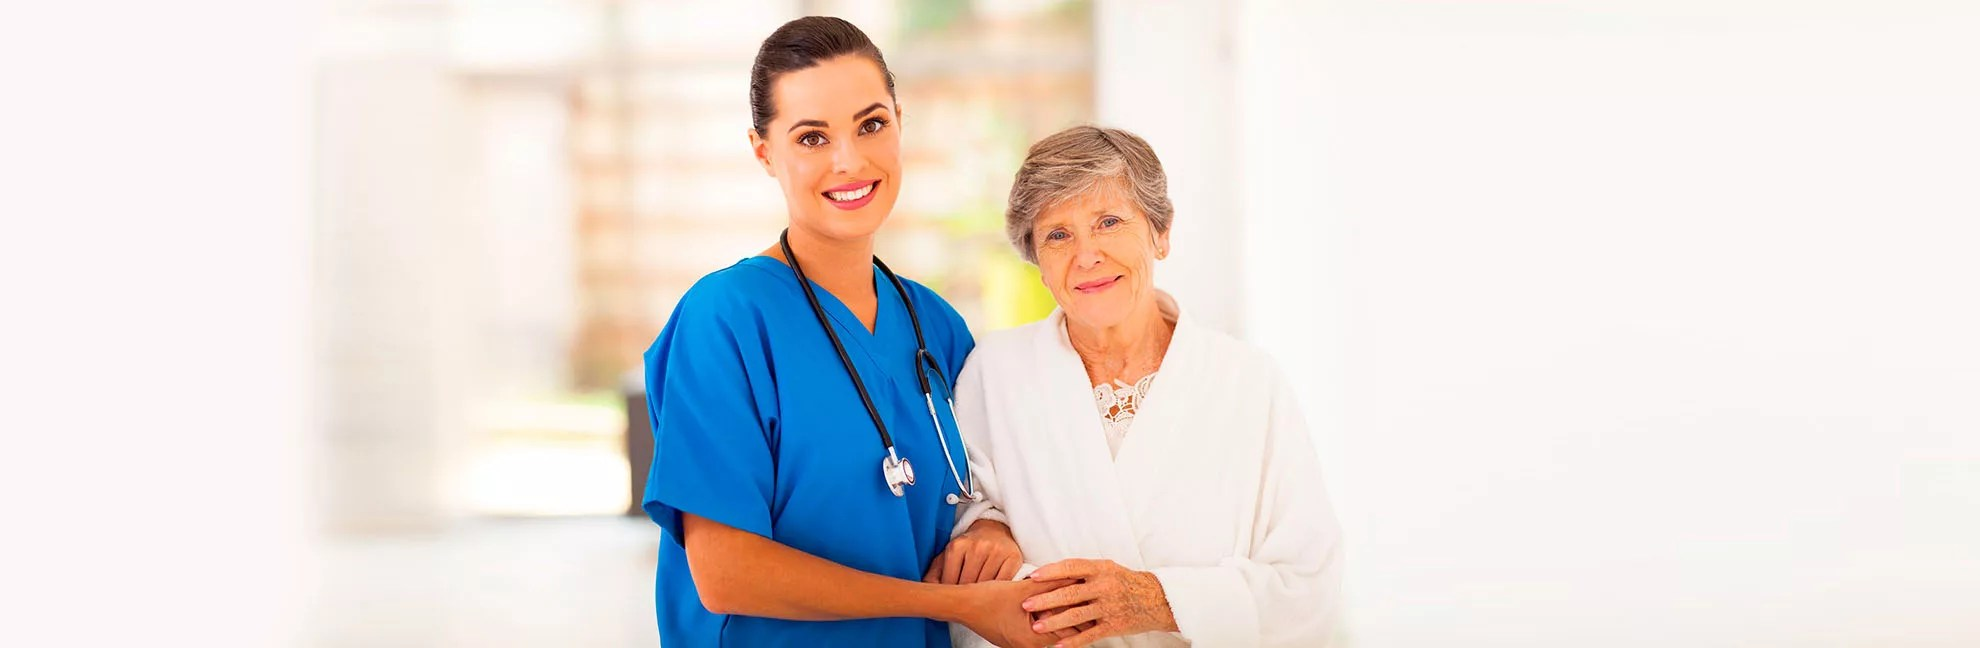 Home Care Service Nearby Types Of Home Care Services For The Elderly Active Home Care Miami